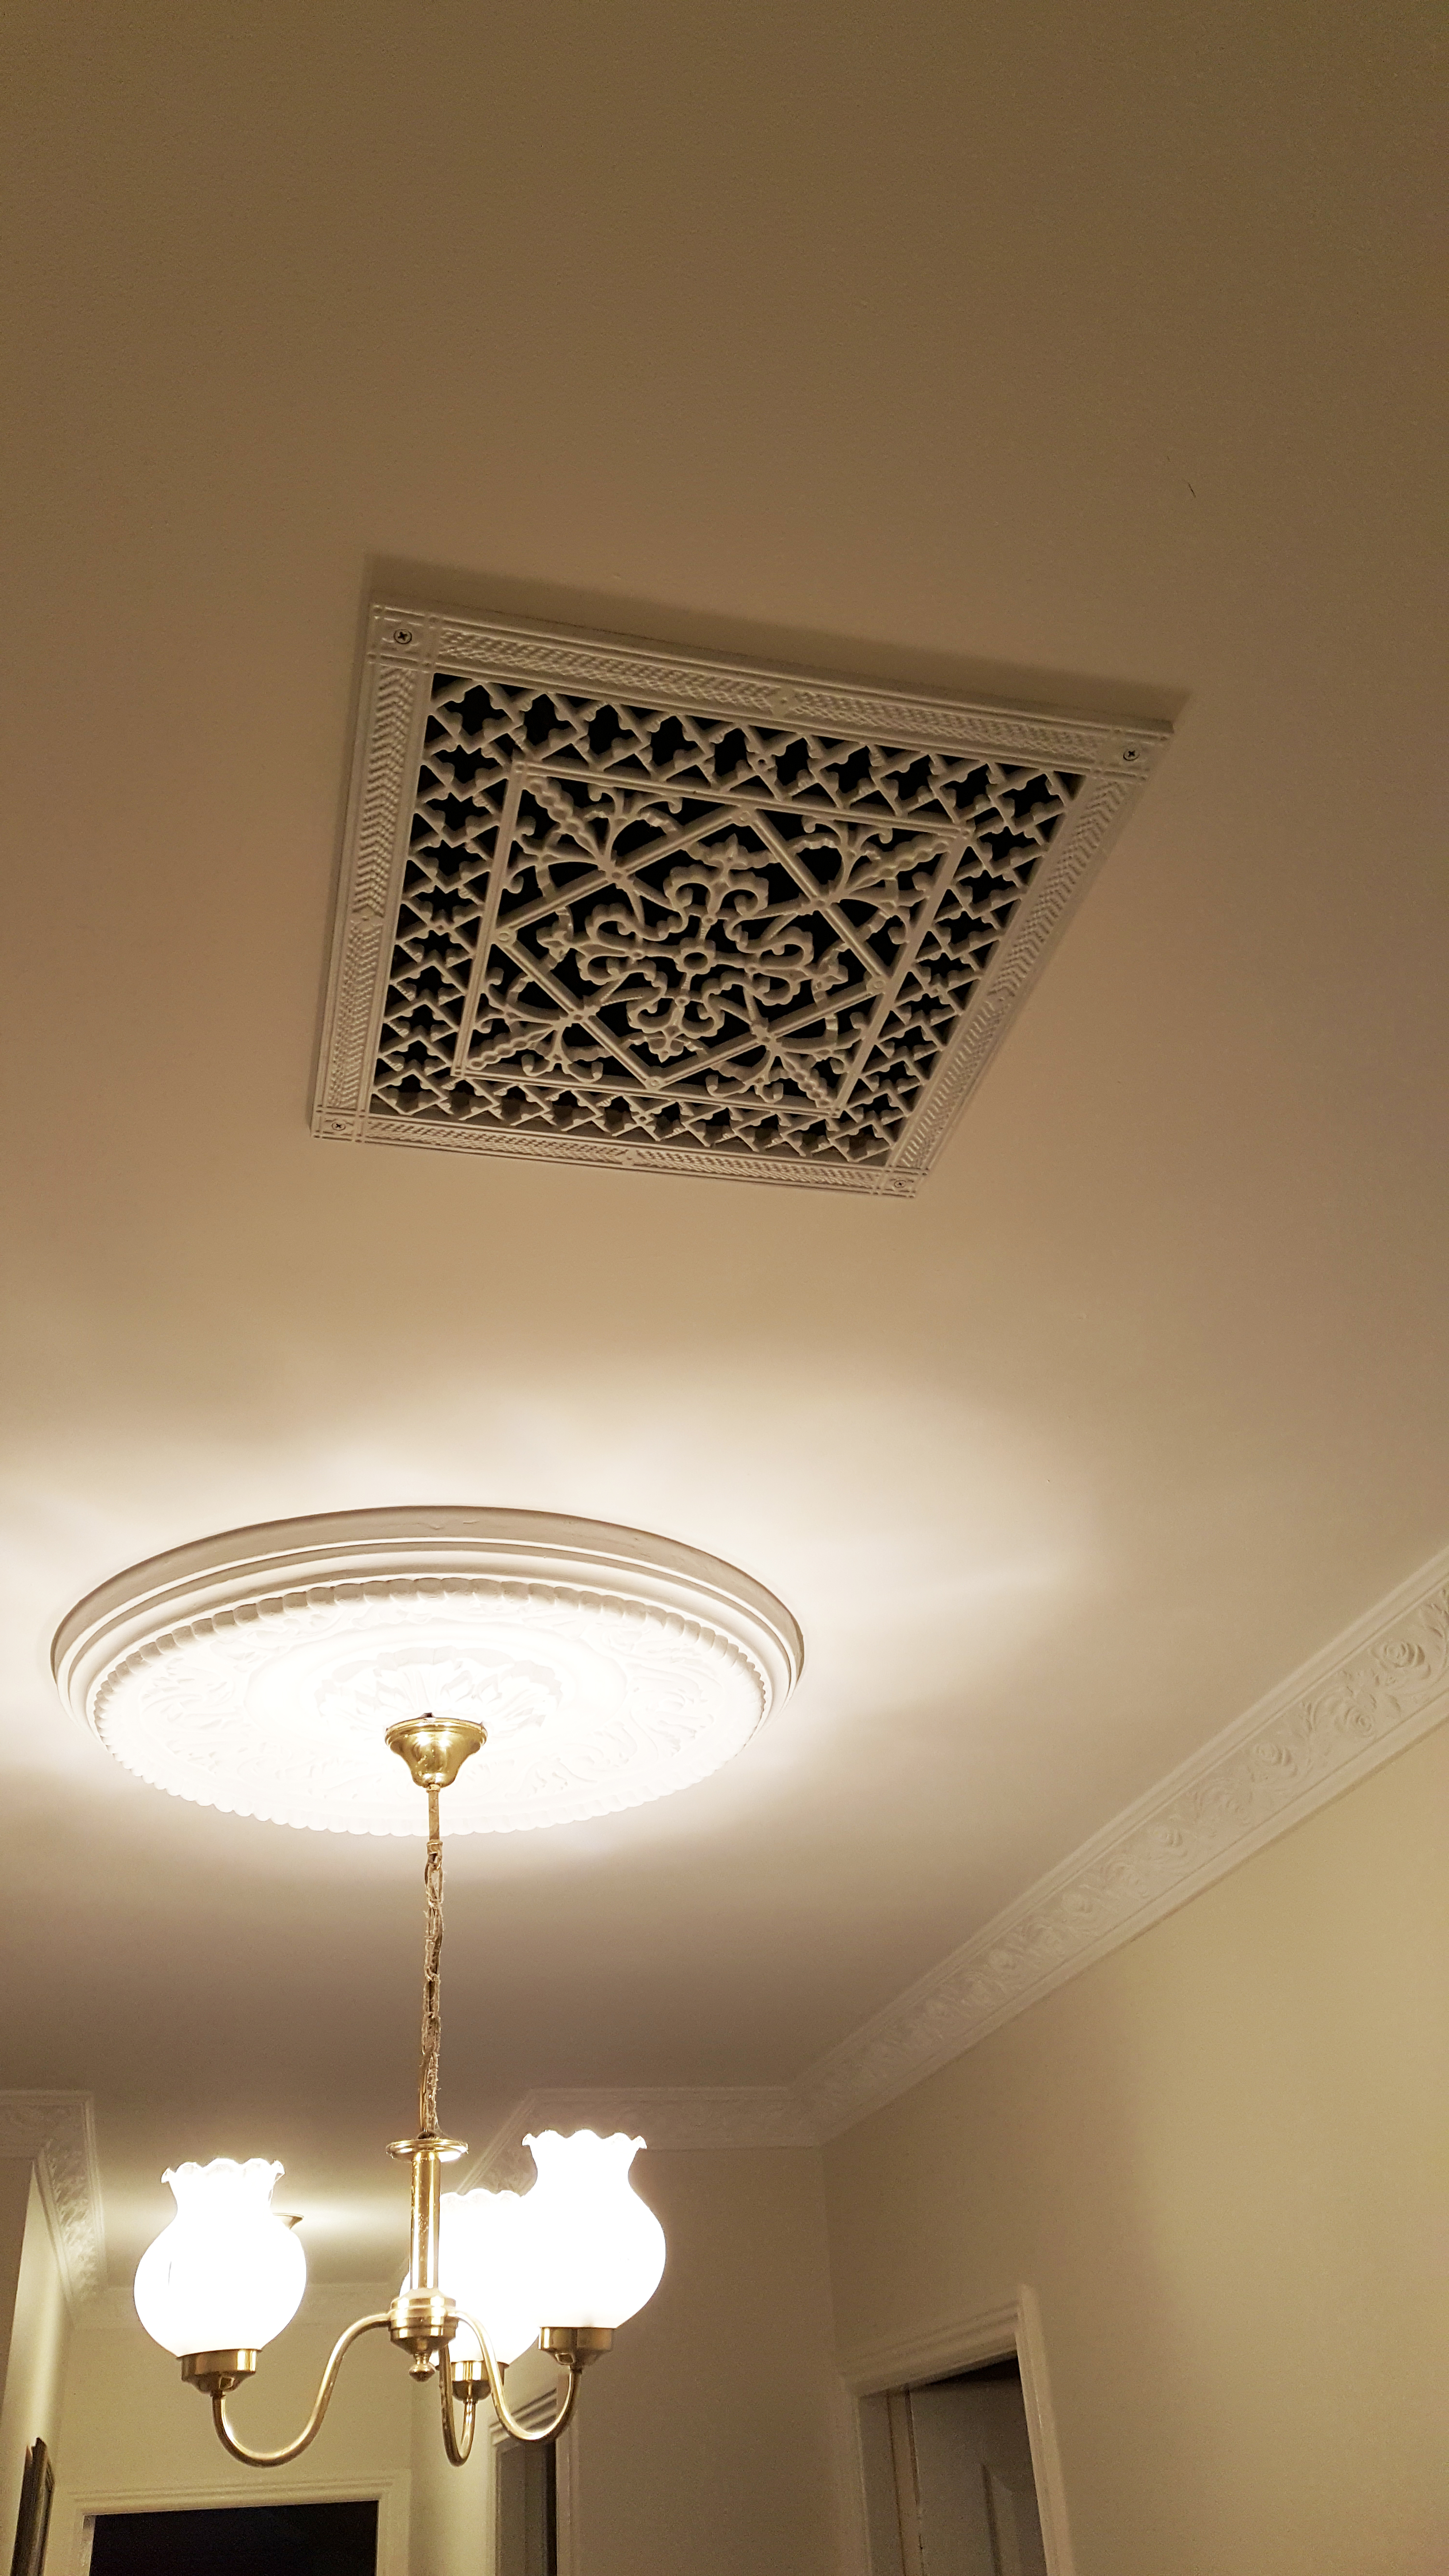 Decorative grille Arts and Crafts Style